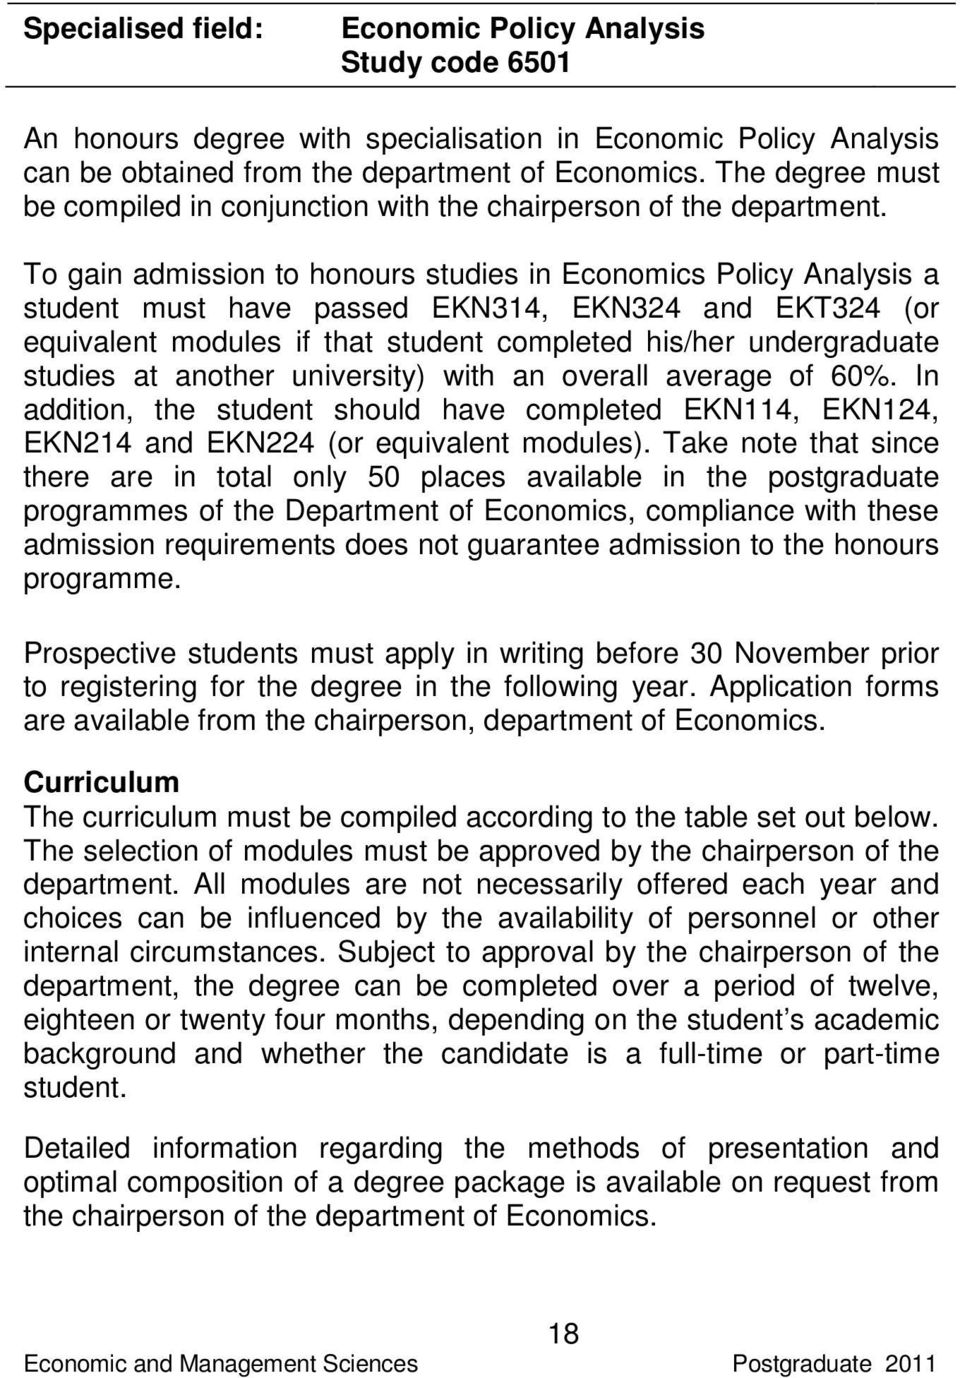 To gain admission to honours studies in Economics Policy Analysis a student must have passed EKN314, EKN324 and EKT324 (or equivalent modules if that student completed his/her undergraduate studies